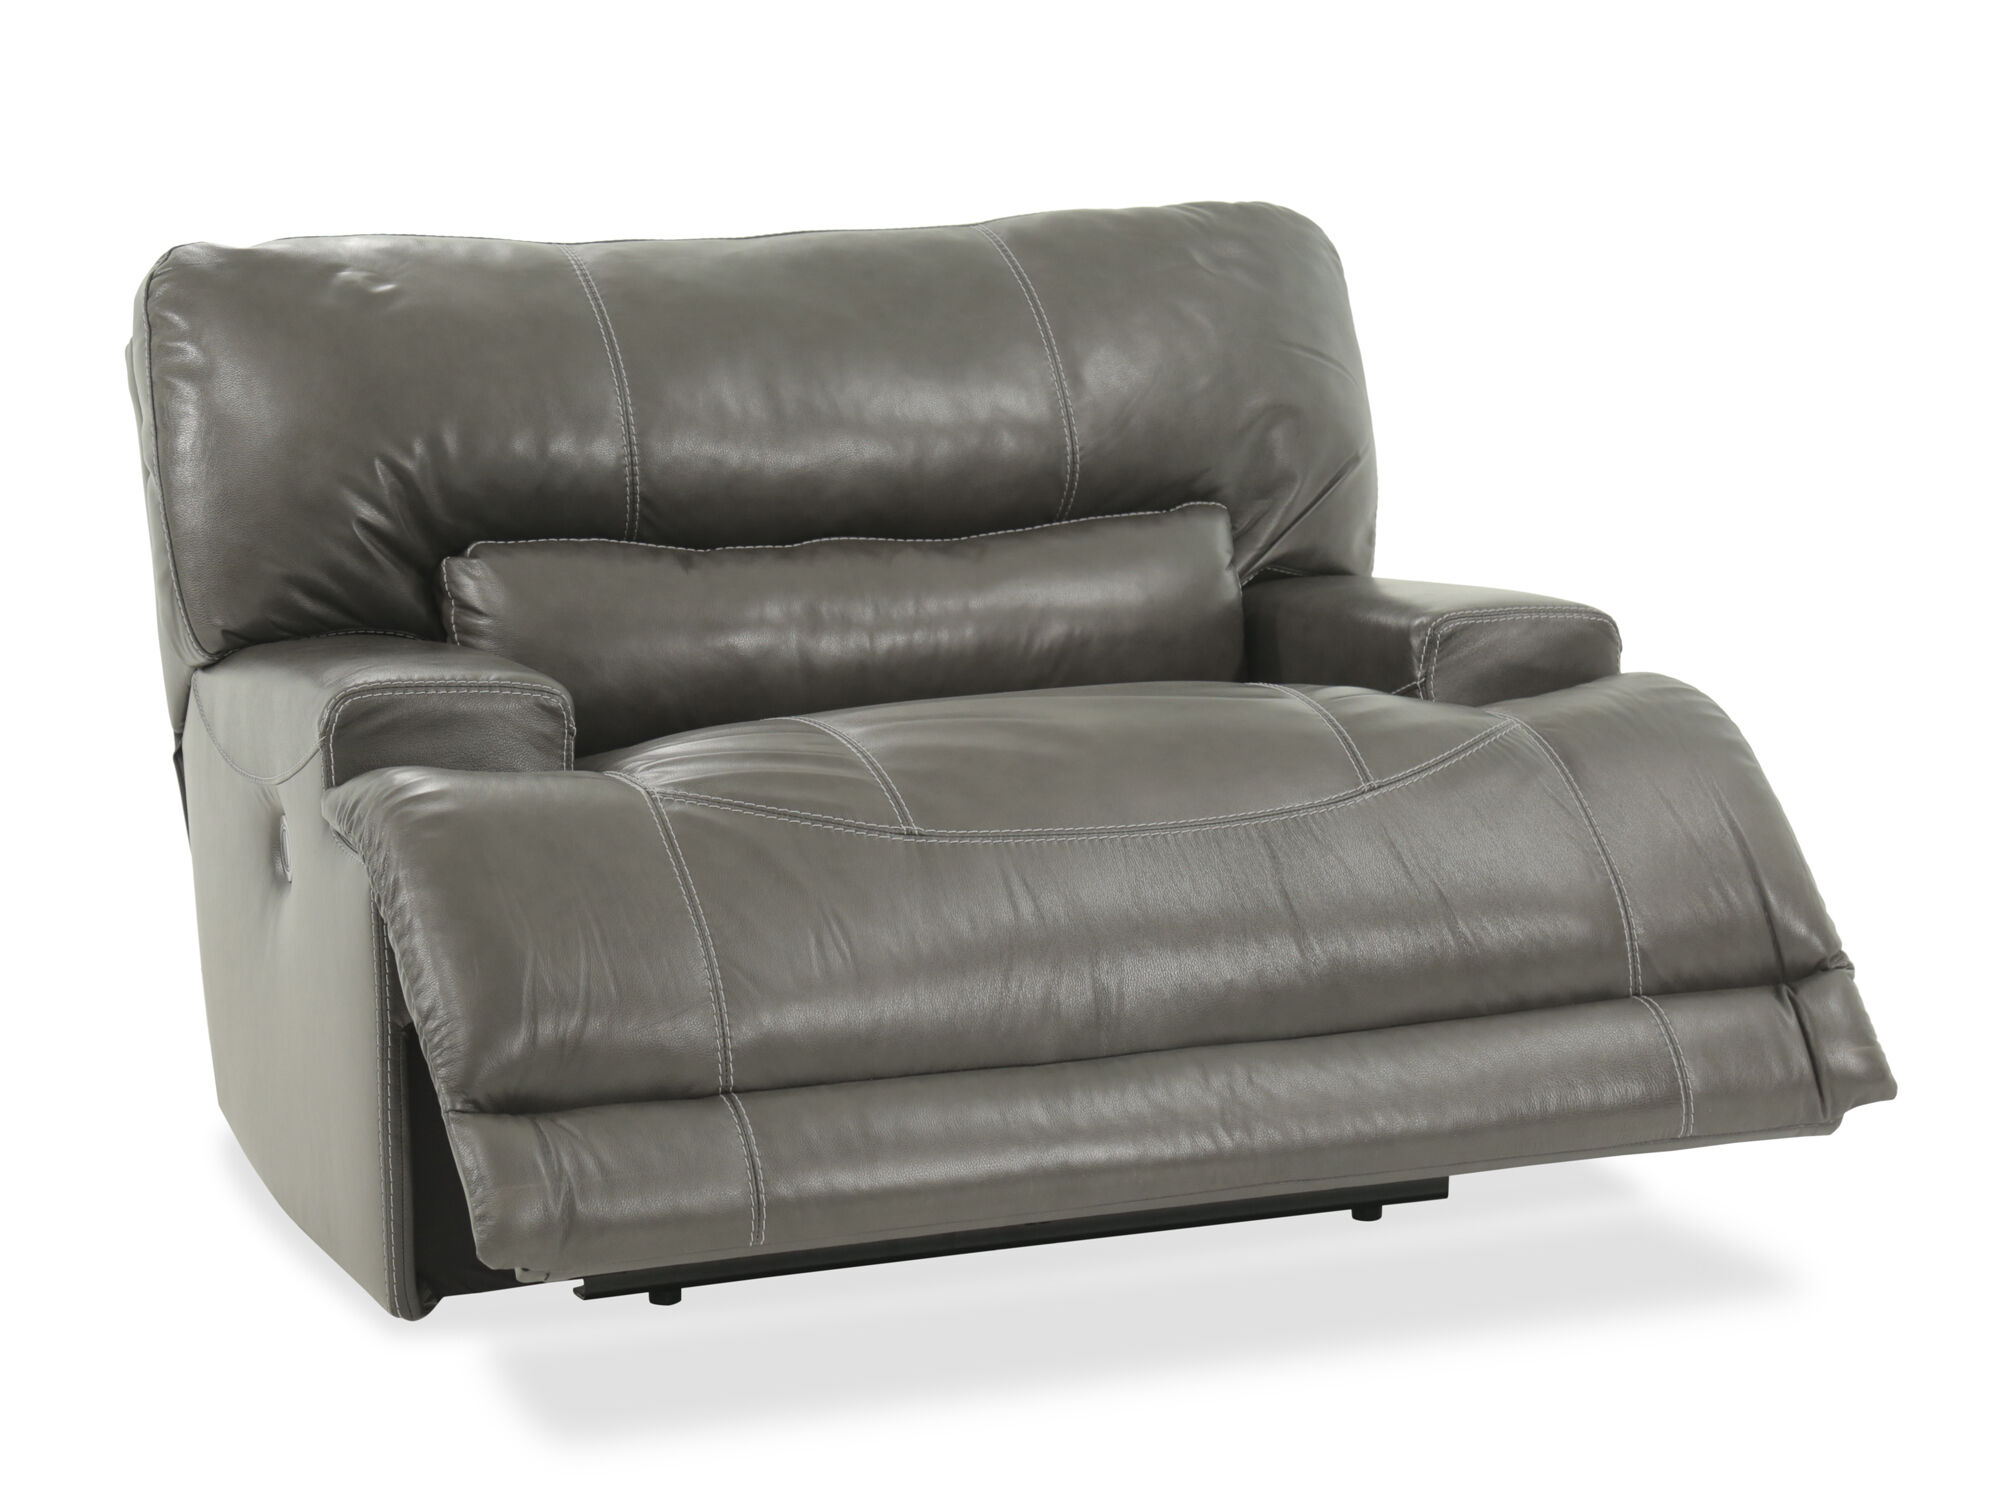 Gray Recliner Chair Oversized Power Recliner In Gray Mathis Brothers Furniture